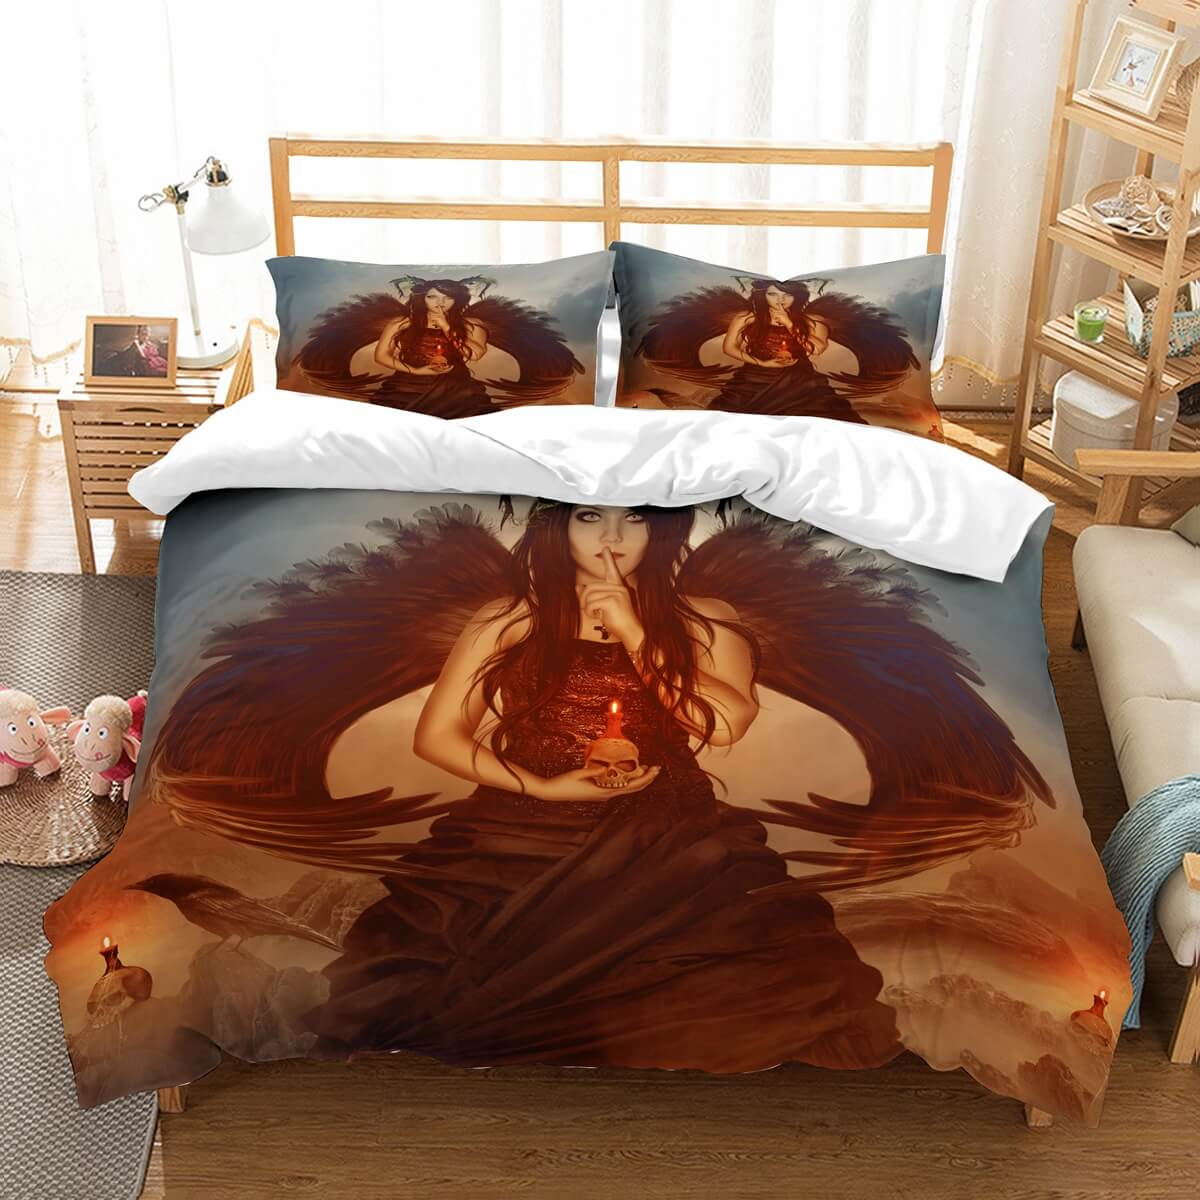 3D Customize Fantasy Bedding Set Duvet Cover Set Bedroom Set Bedlinen